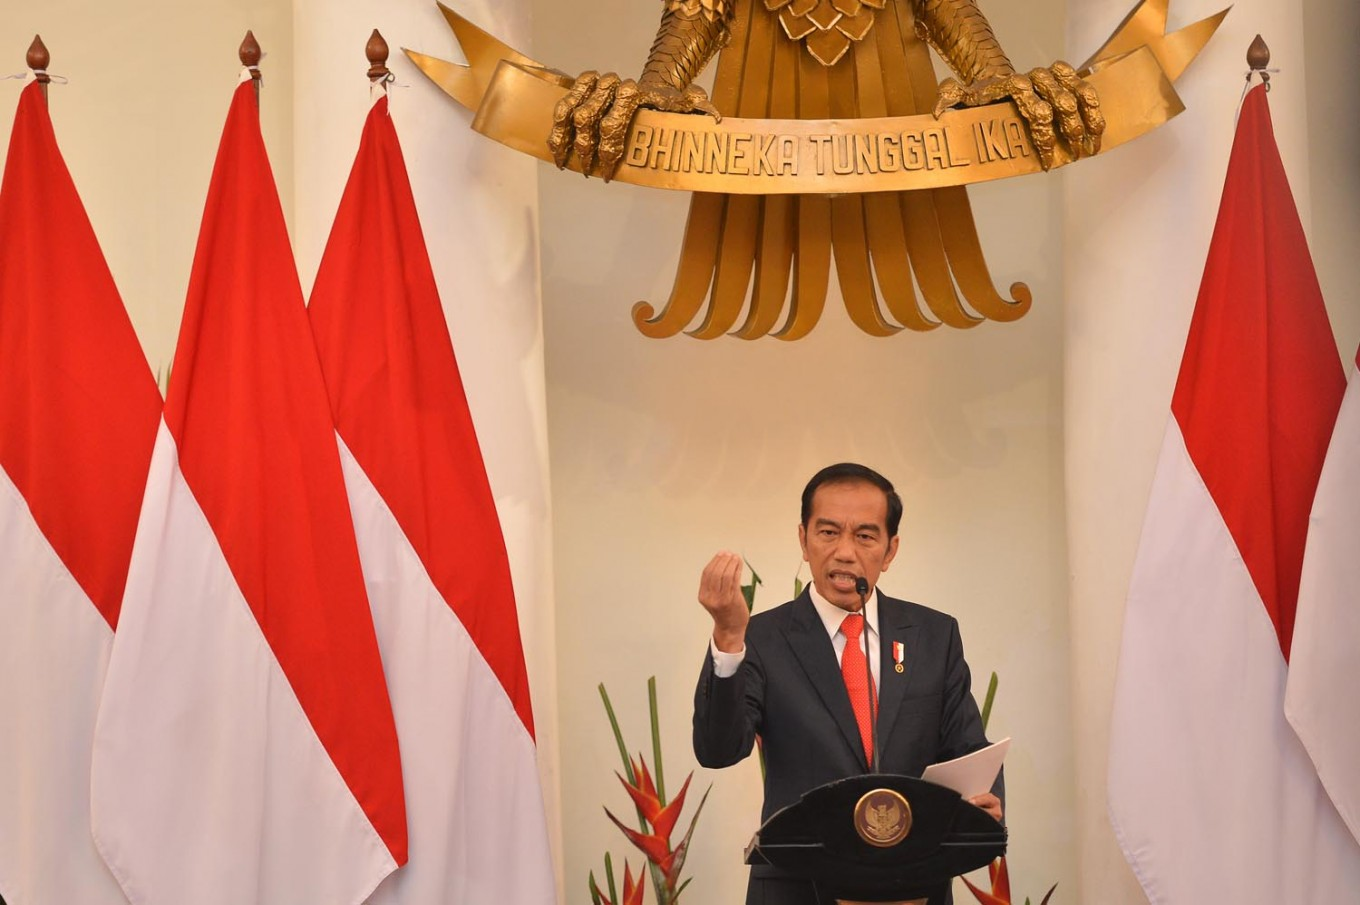 Jokowi 'strongly protests' EU stance on RI palm oil